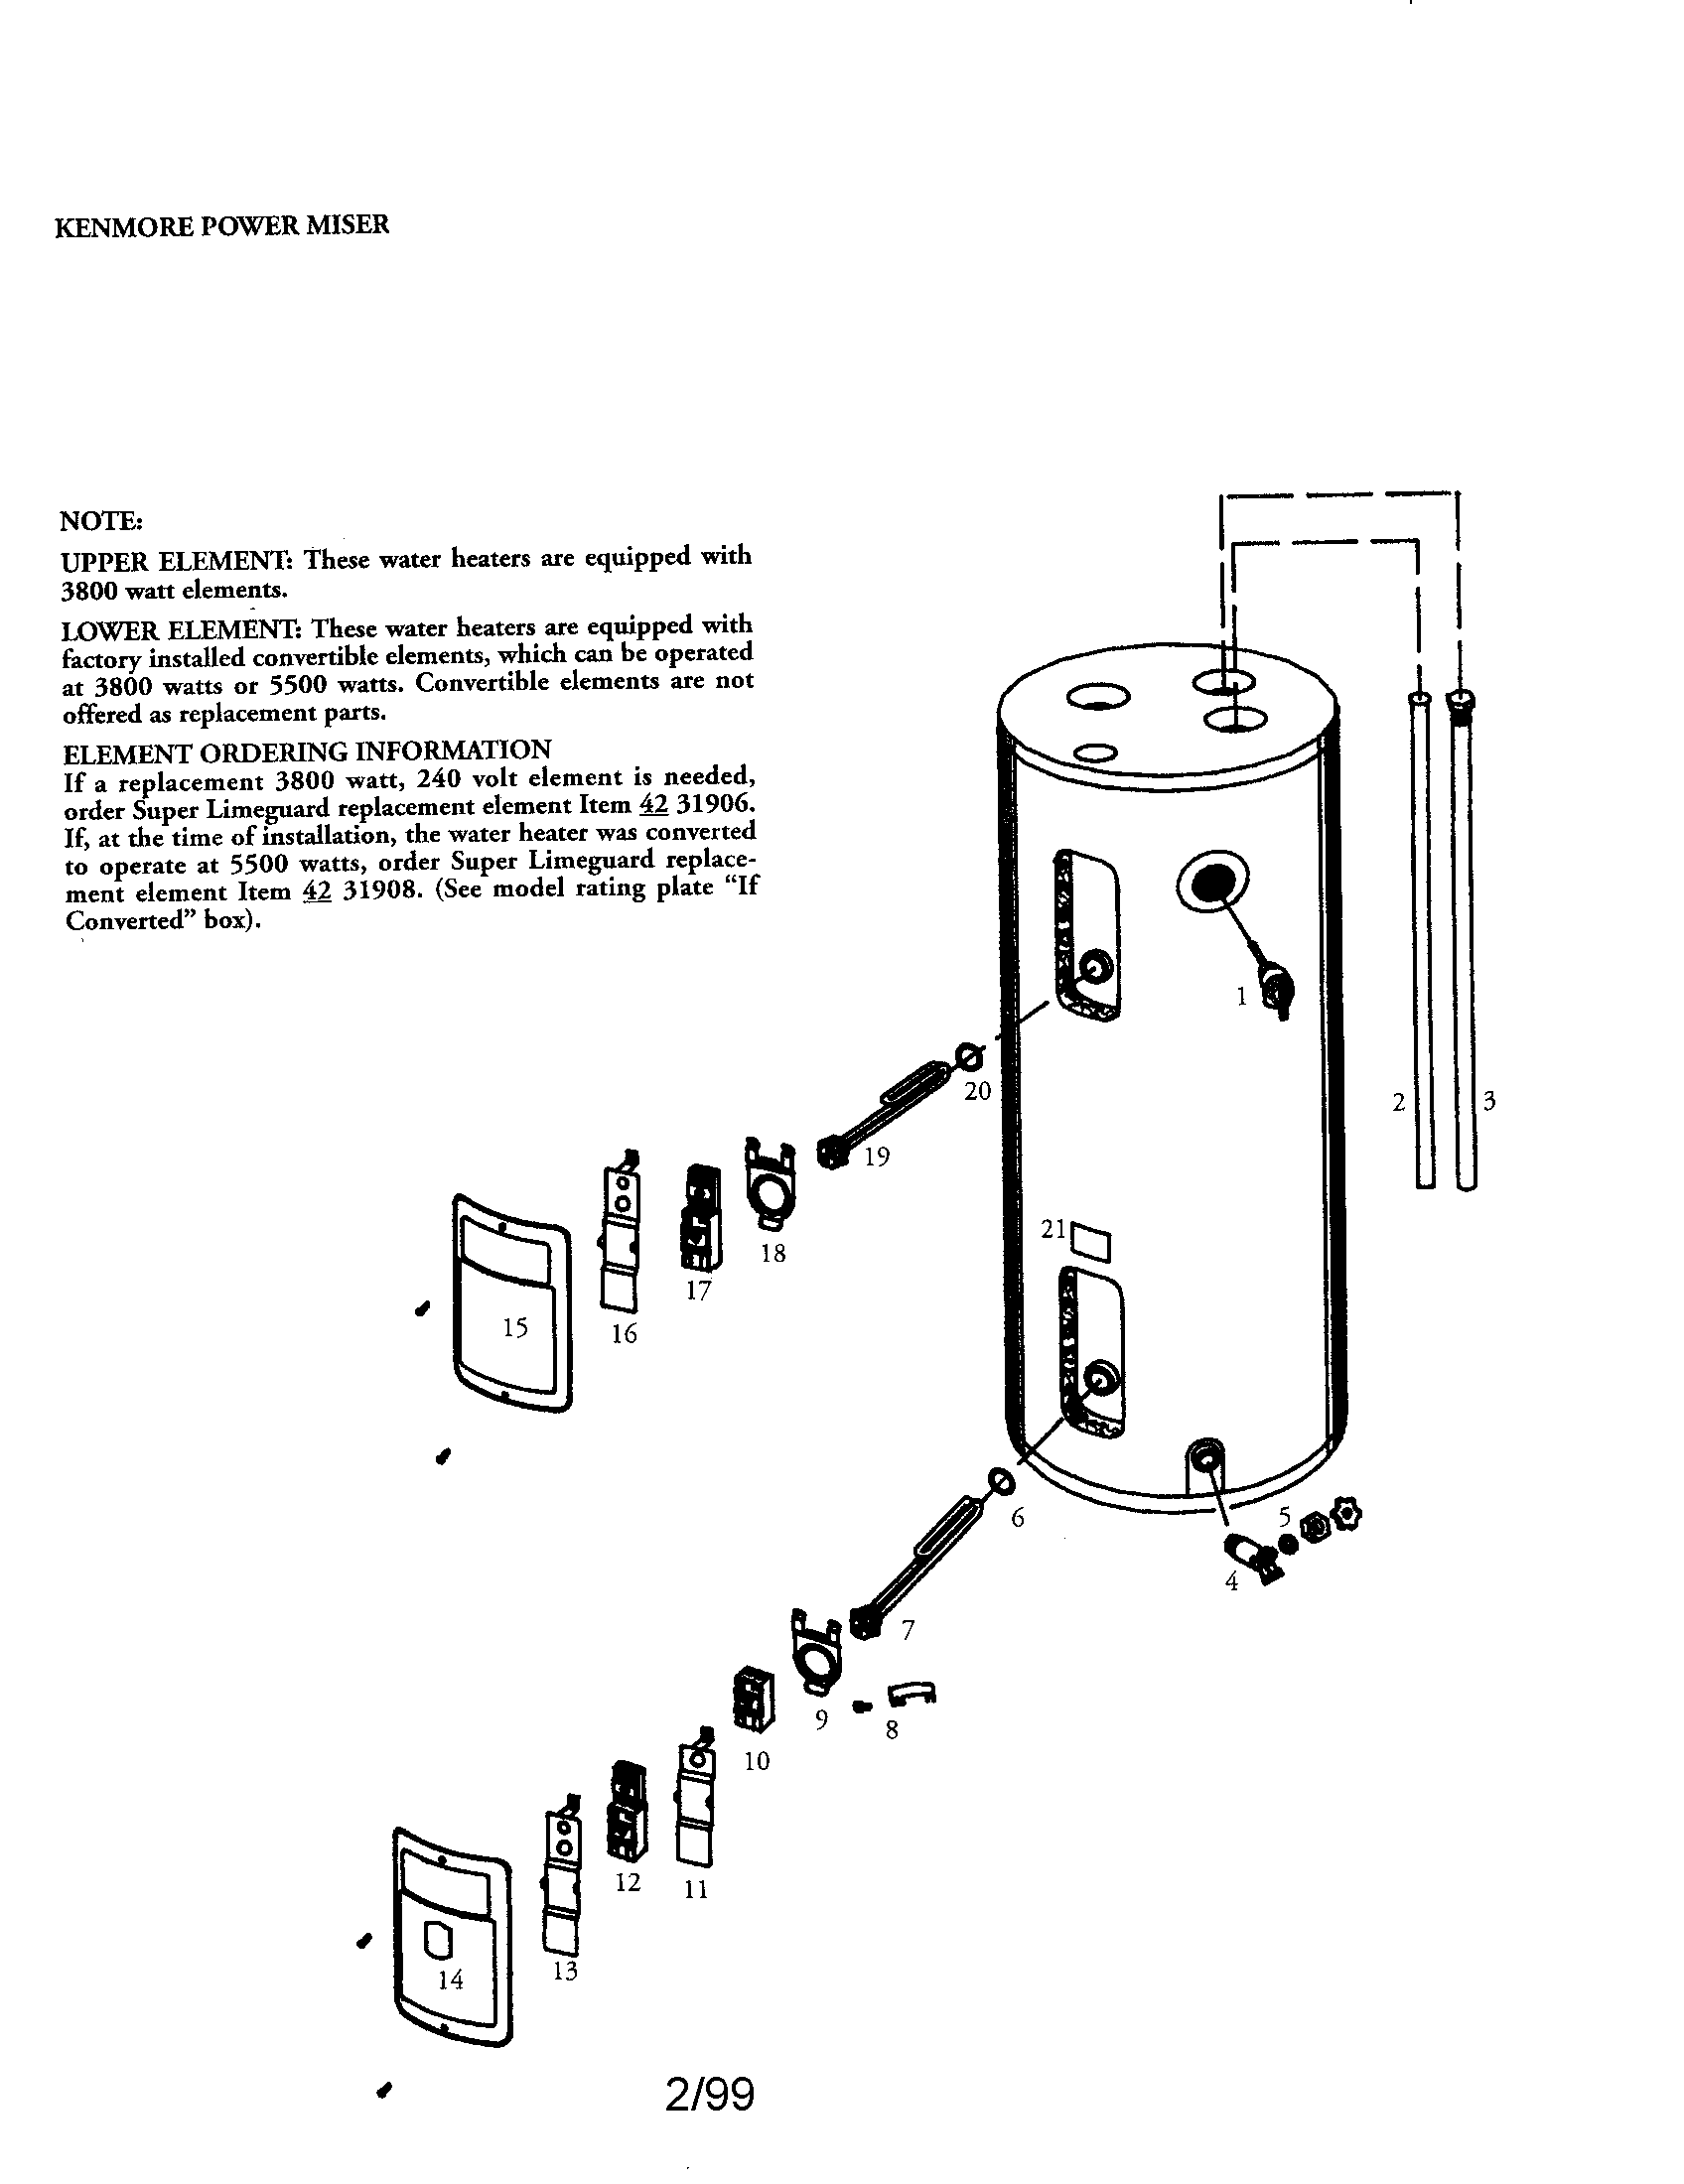 kenmore hot water heater wiring diagram ct kwh meter model 153316454 electric genuine parts no found